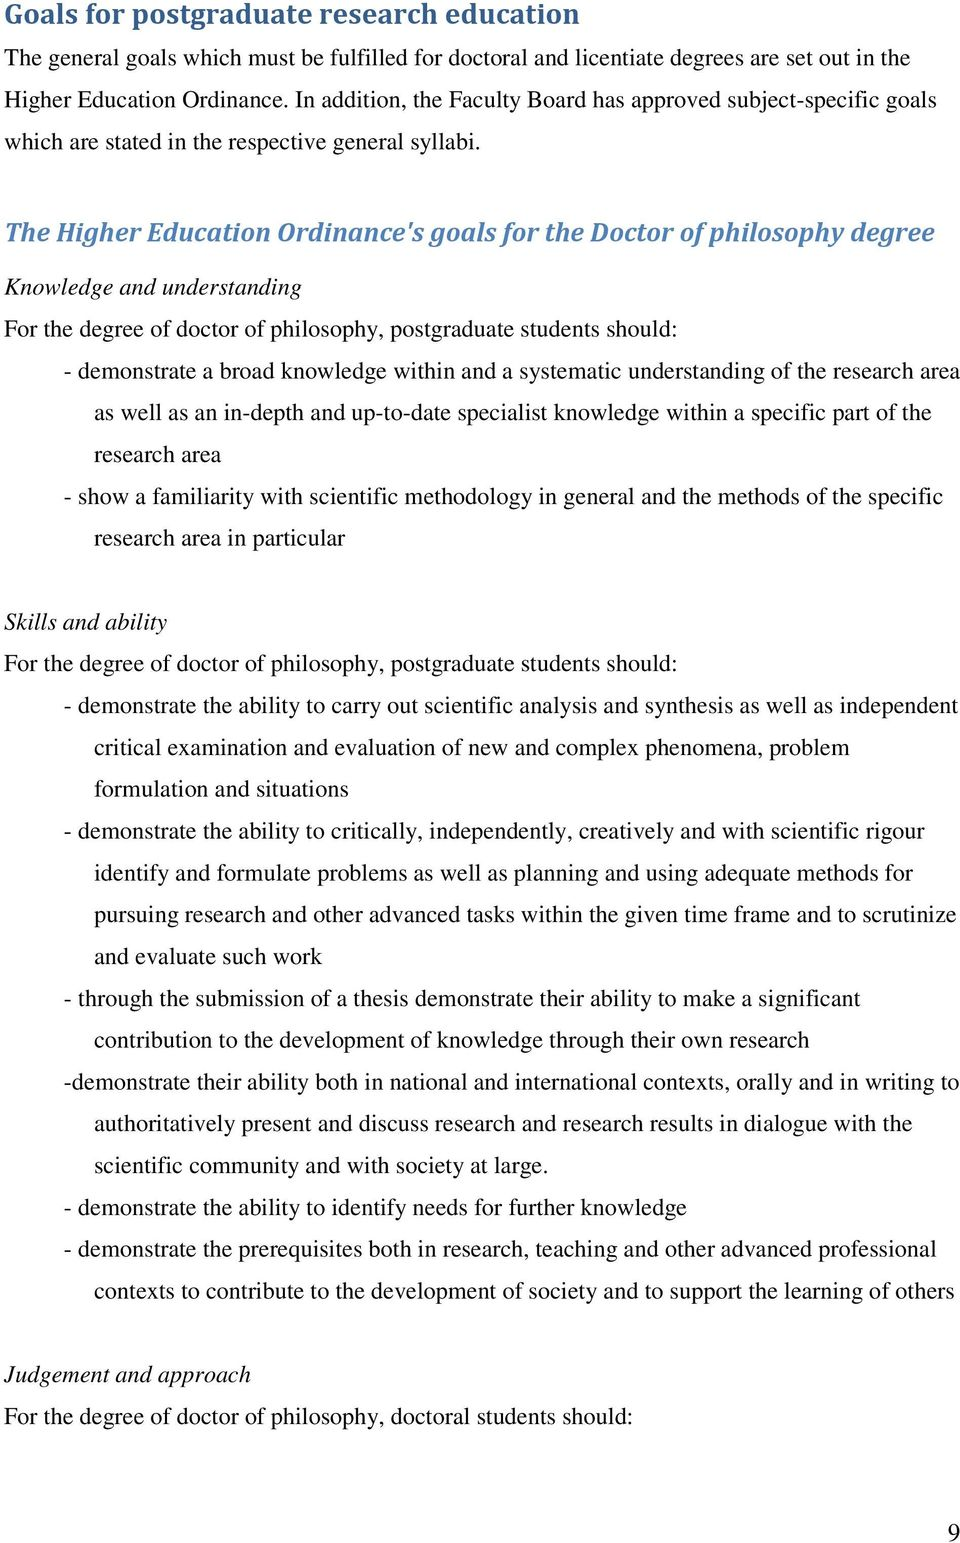 The Higher Education Ordinance's goals for the Doctor of philosophy degree Knowledge and understanding For the degree of doctor of philosophy, postgraduate students should: - demonstrate a broad